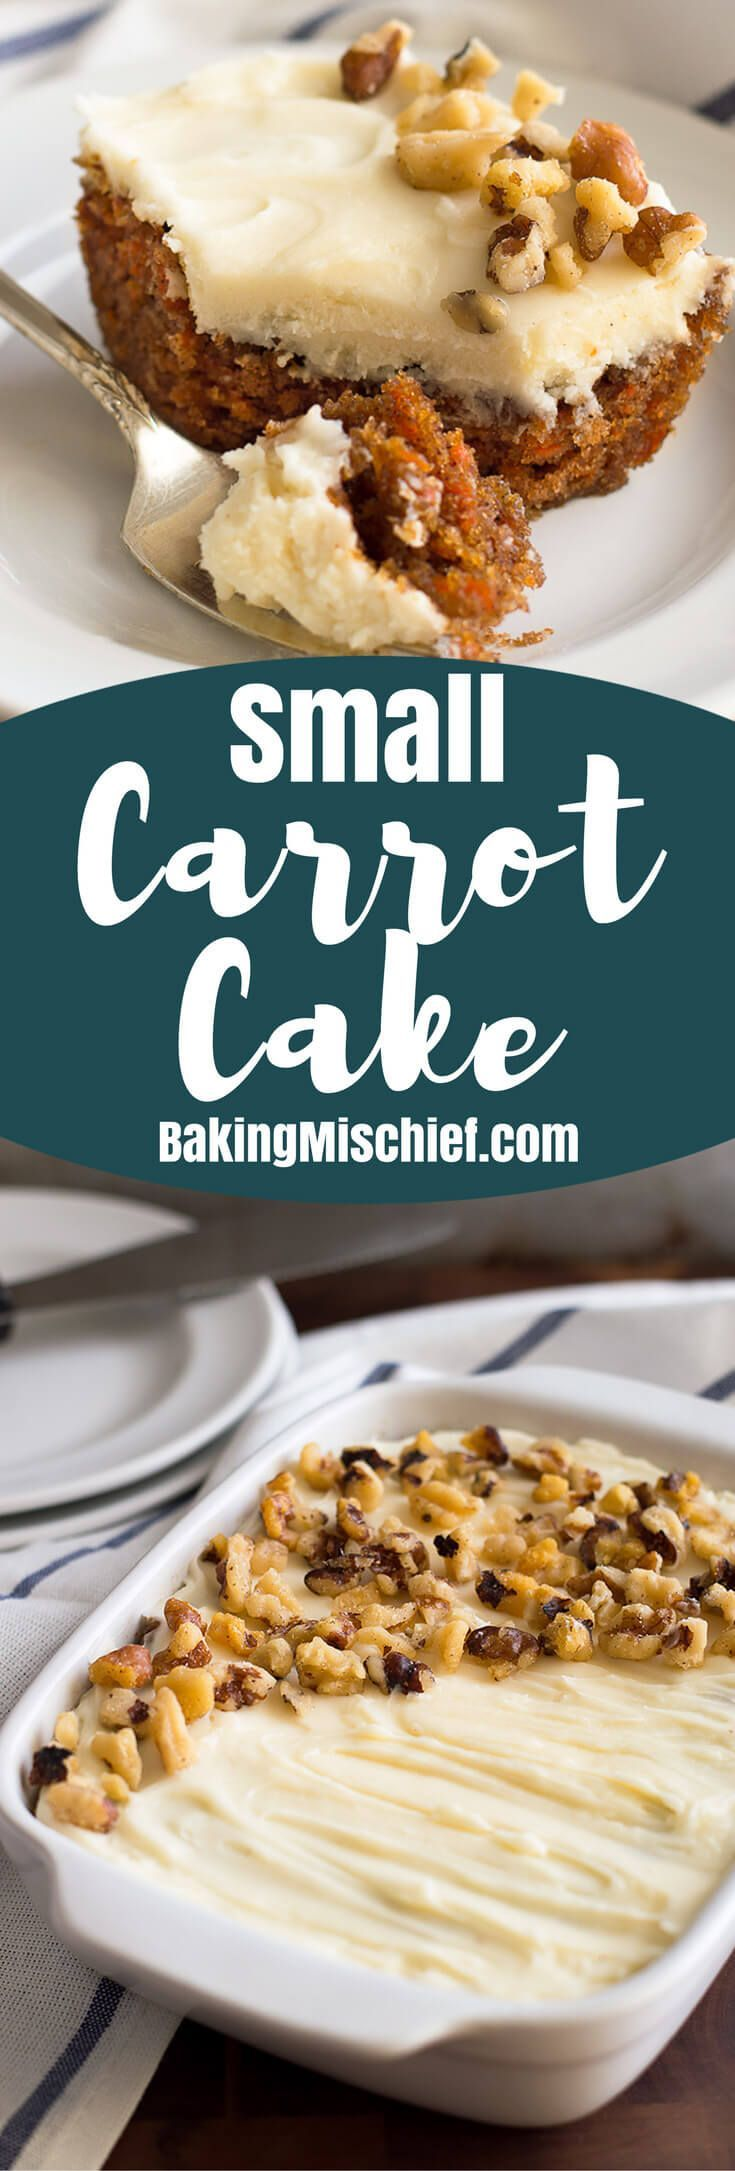 This incredibly easy Small Carrot Cake With Cream Cheese Frosting is a perfect replica of my mom's potluck favorite! From http://BakingMischief.com | Small-batch Dessert | Mini Cake |